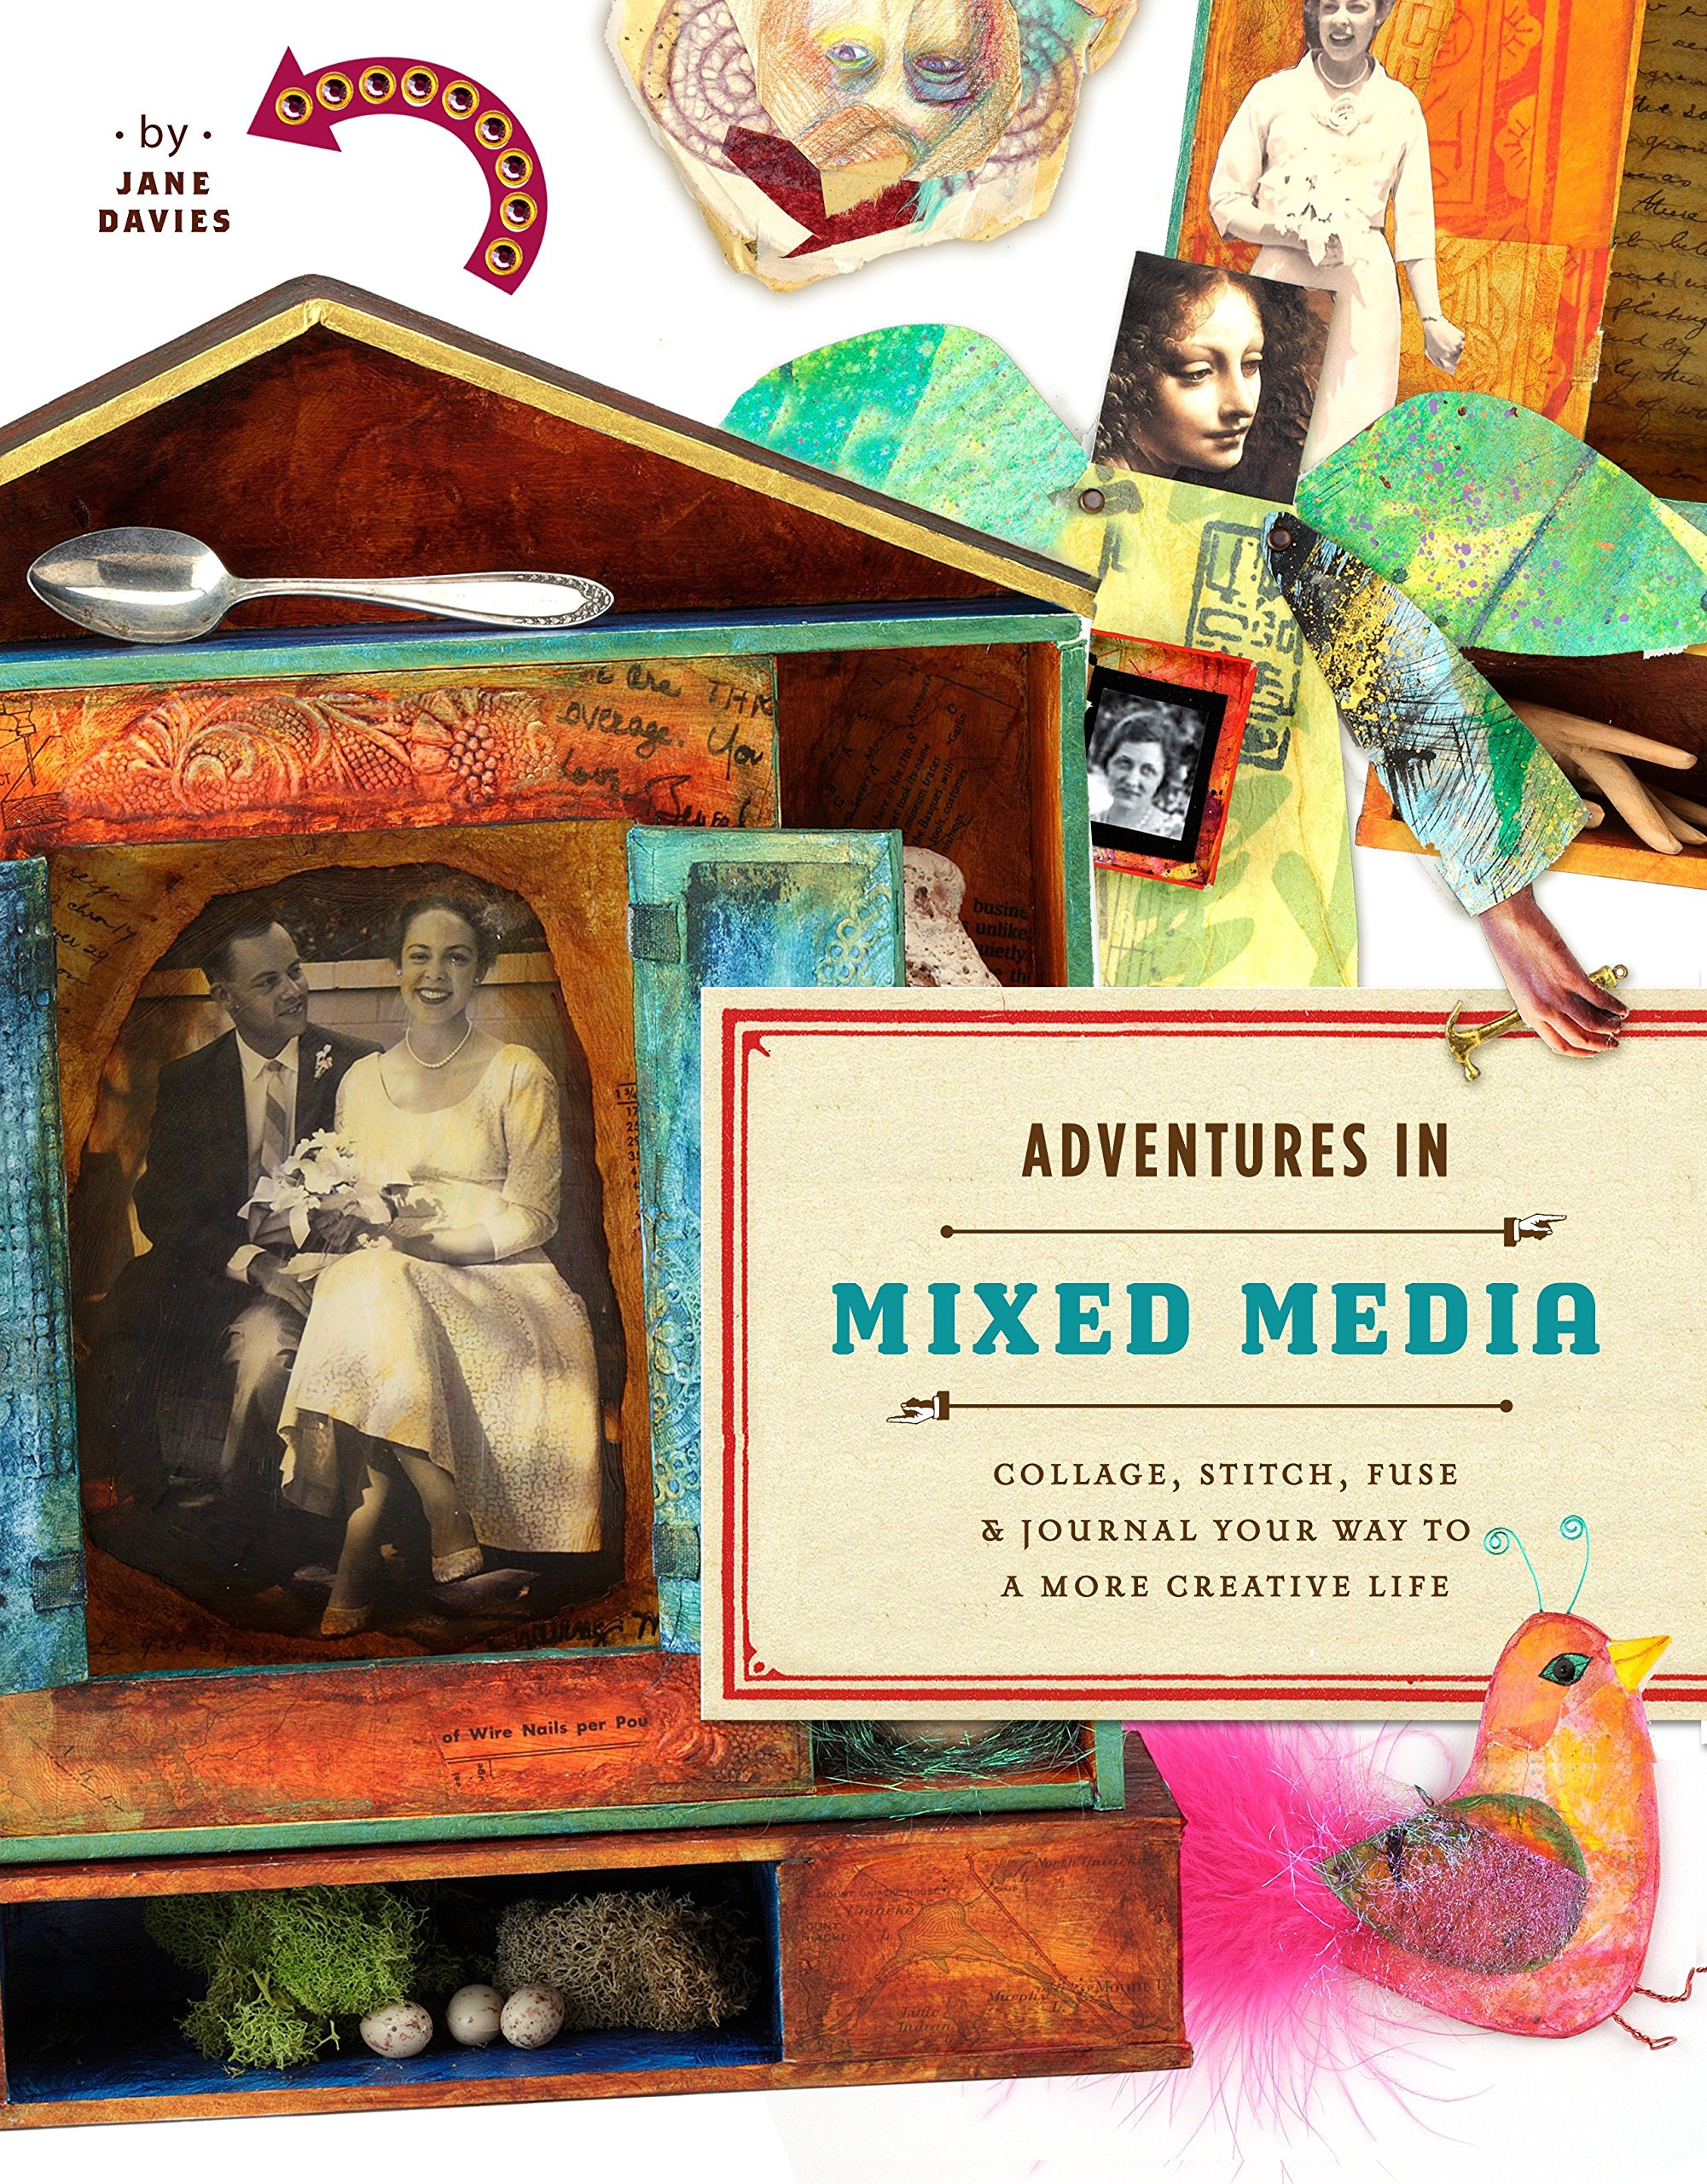 Adventures in Mixed Media: Collage, Stitch, Fuse, and Journal Your Way to a More Creative Life PDF